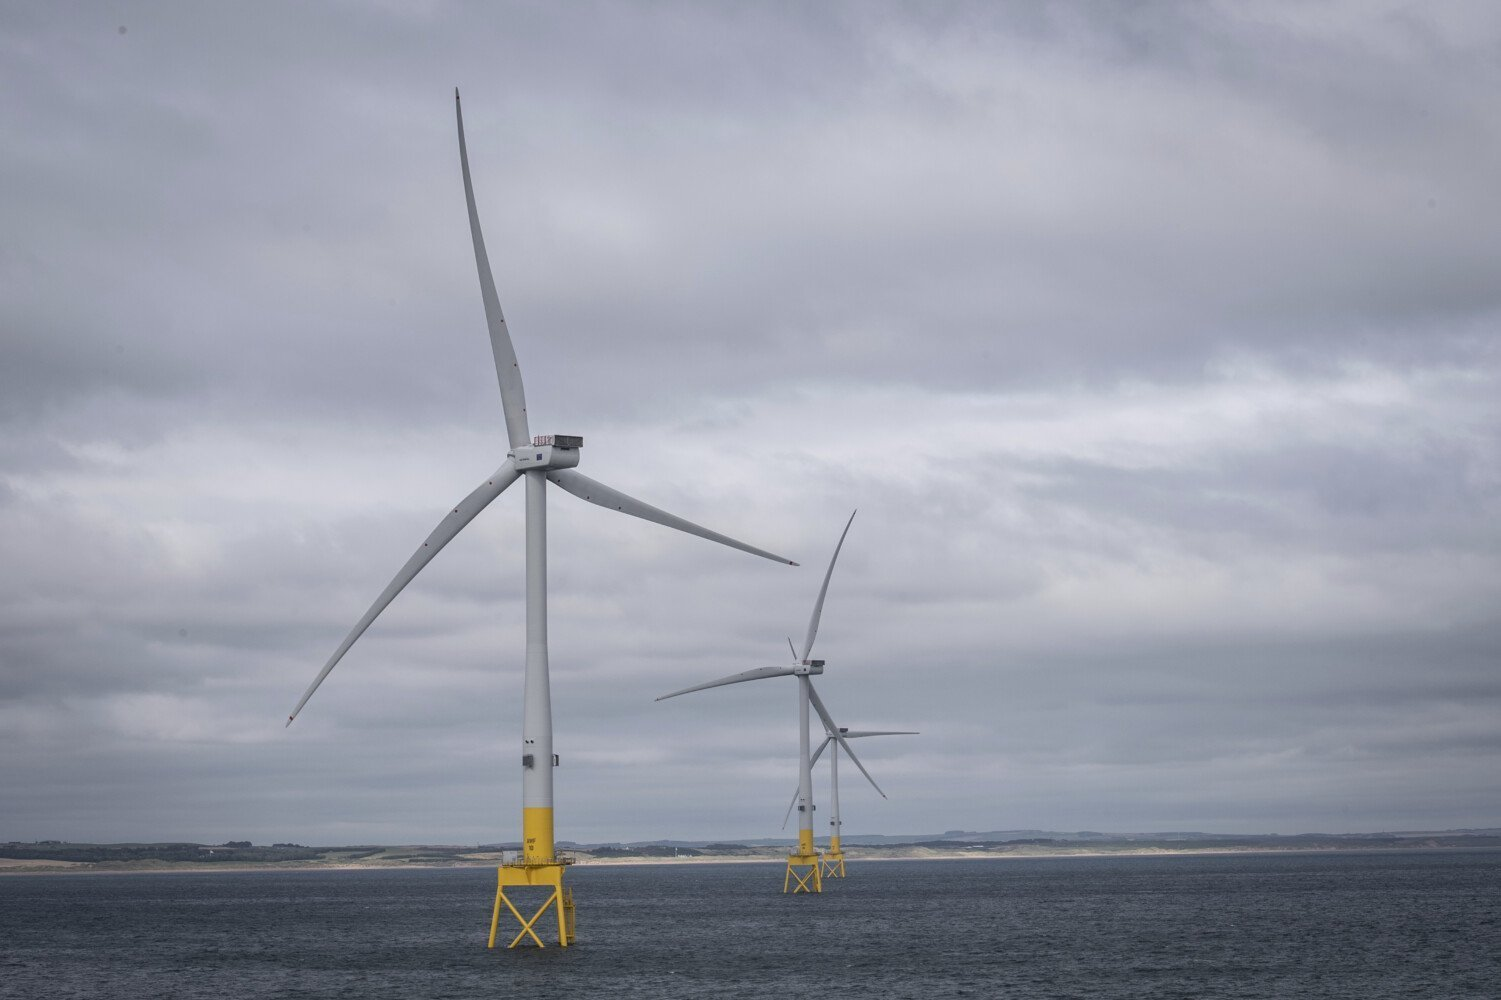 Op-Ed: Developing floating offshore wind can help protect Maine's seafaring culture, marine environment